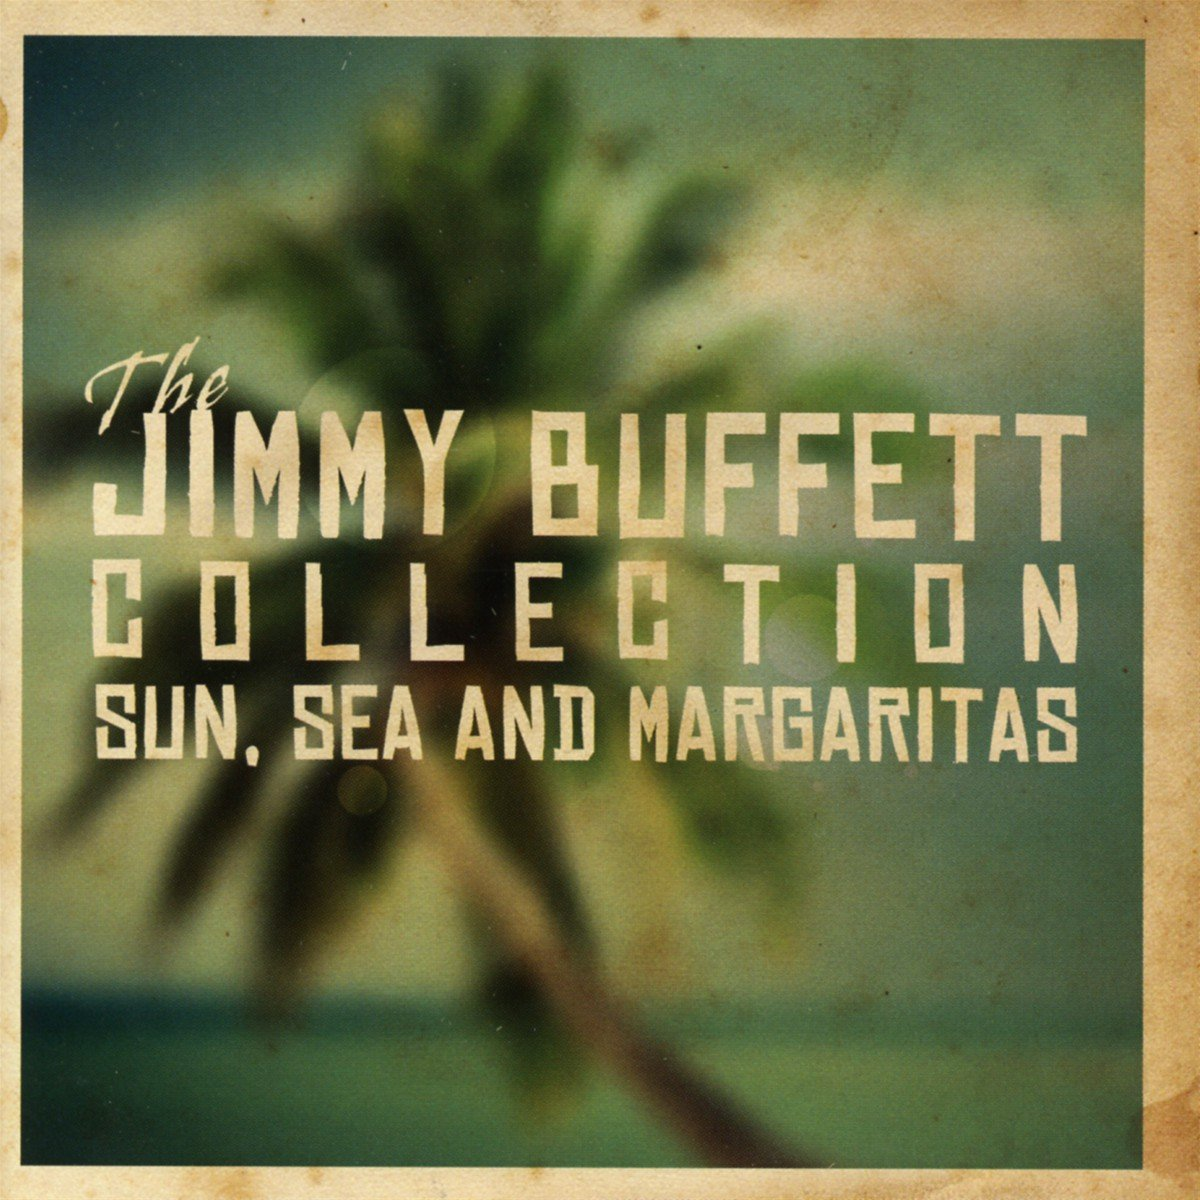 The Jimmy Buffett Collection - Sun Sea & Margaritas by Humphead